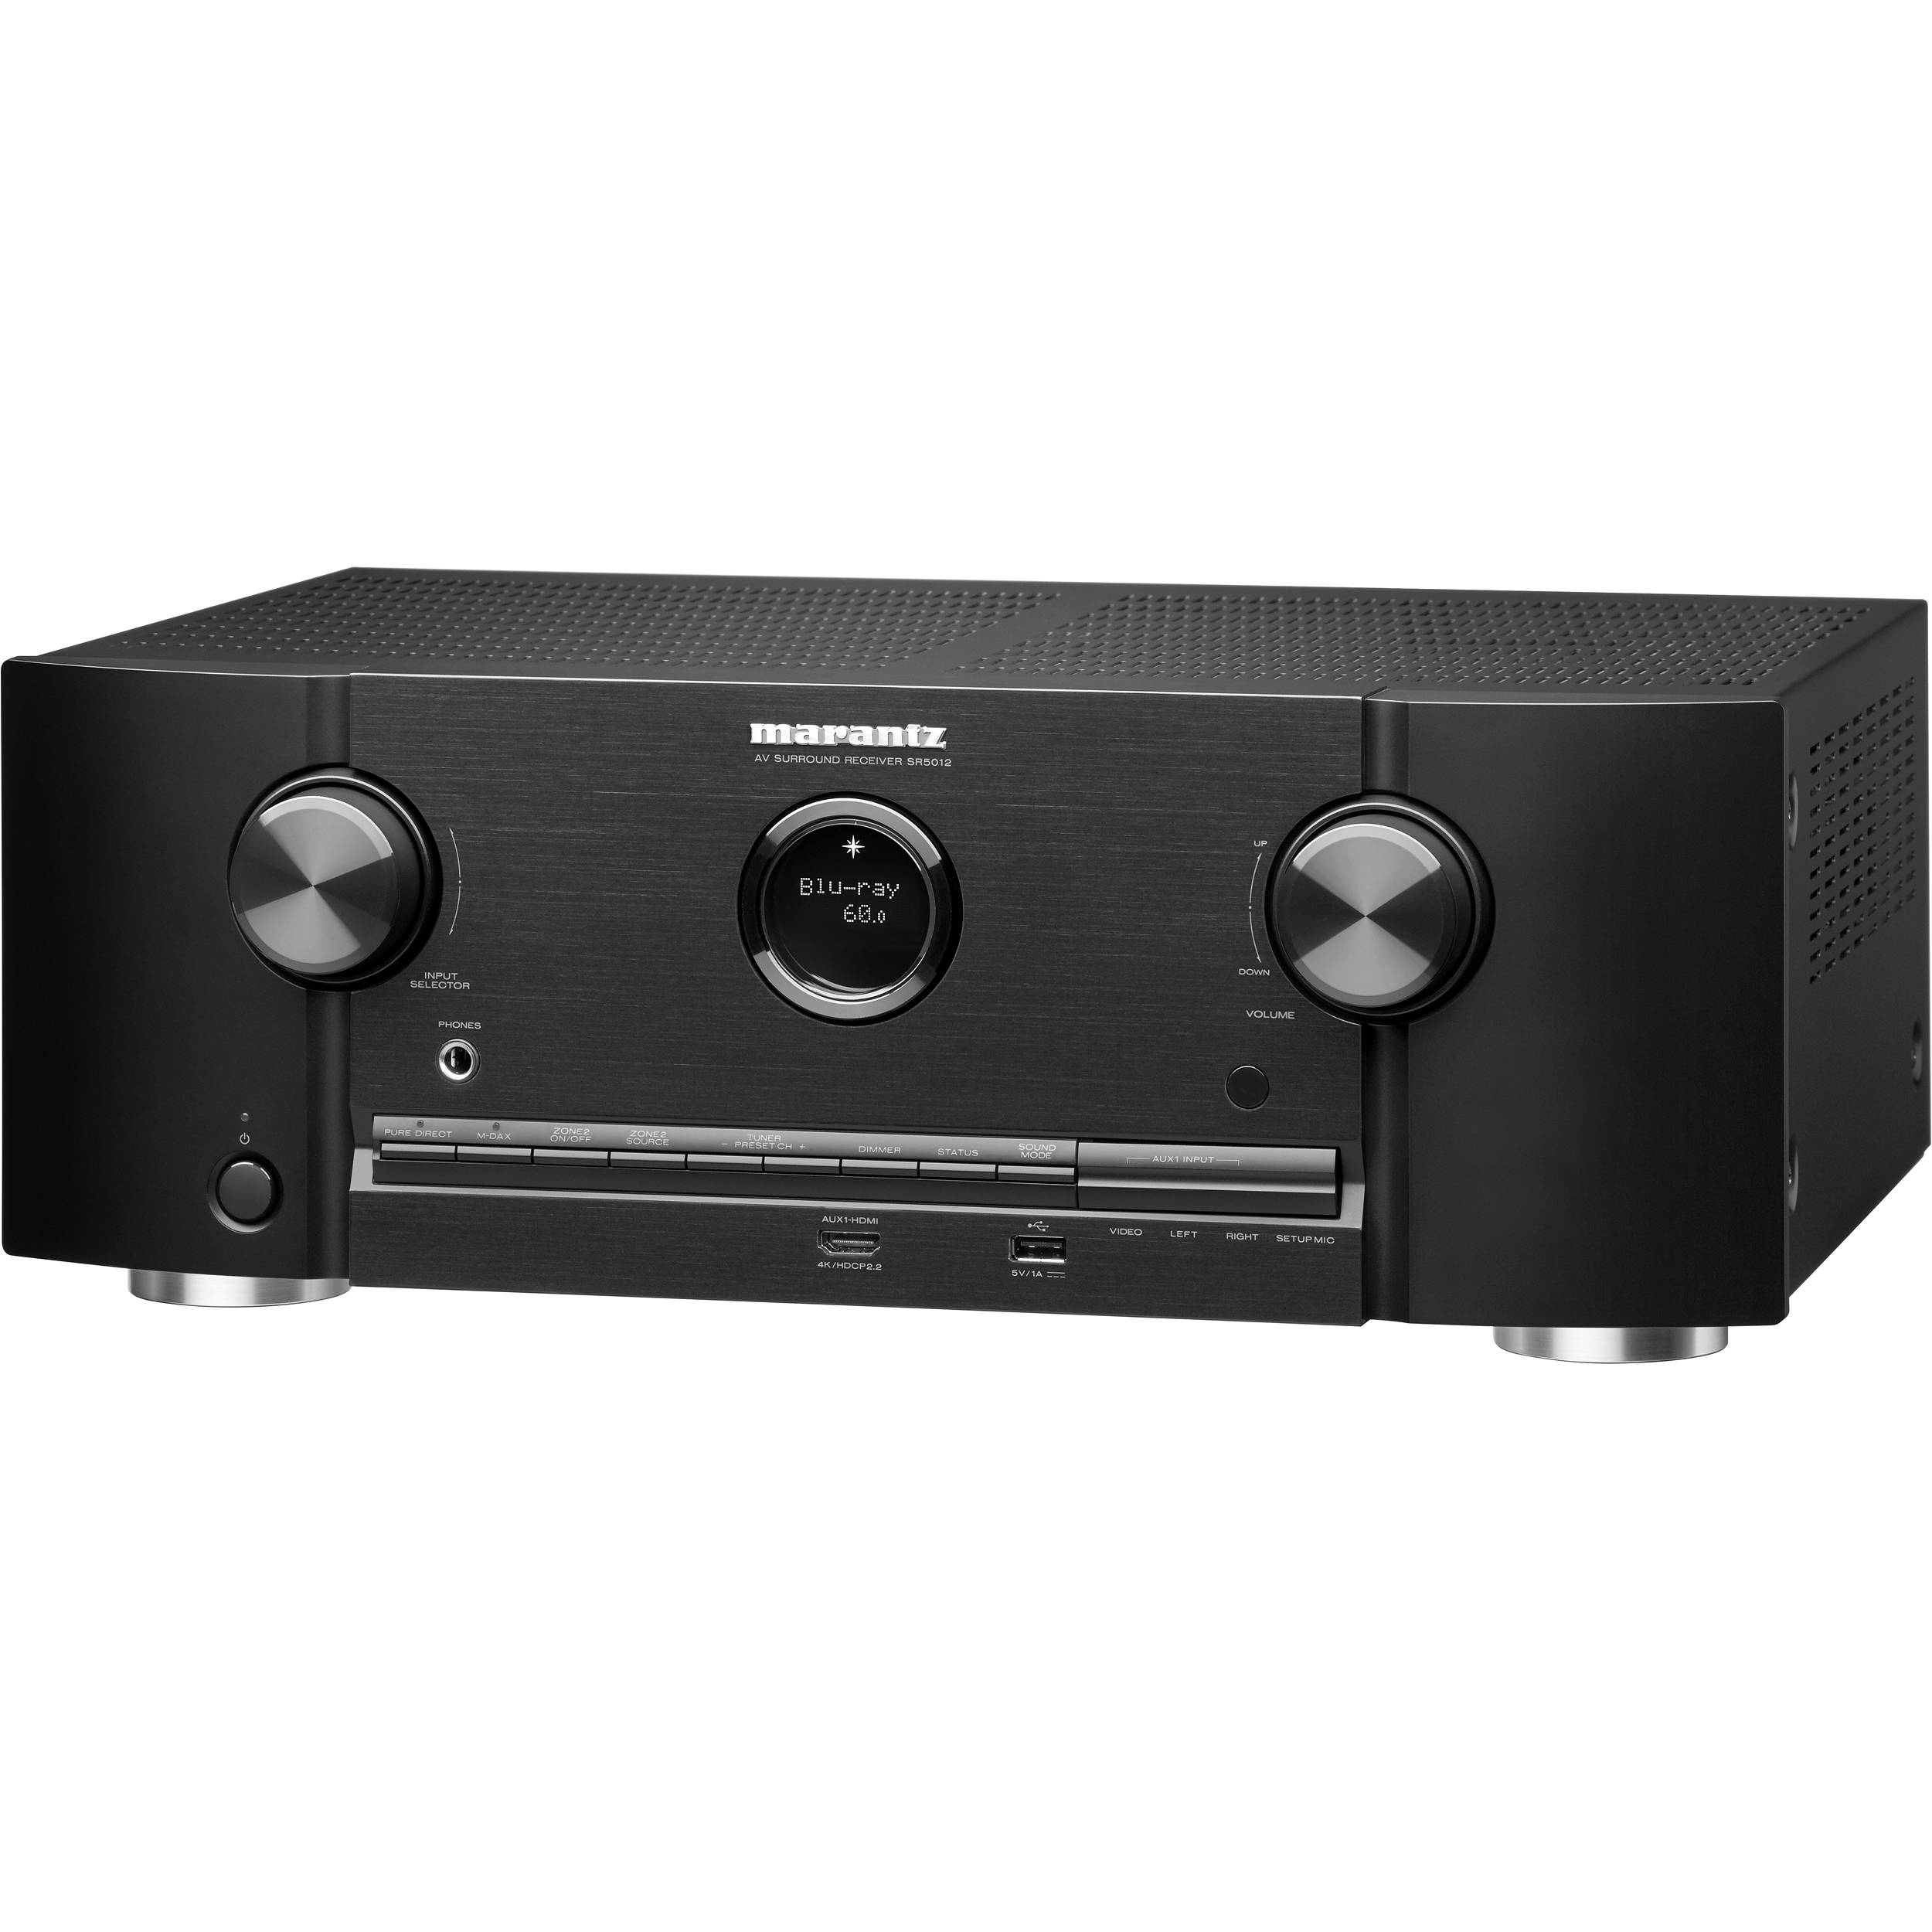 Marantz SR5012 7 2-Channel Network A/V Receiver